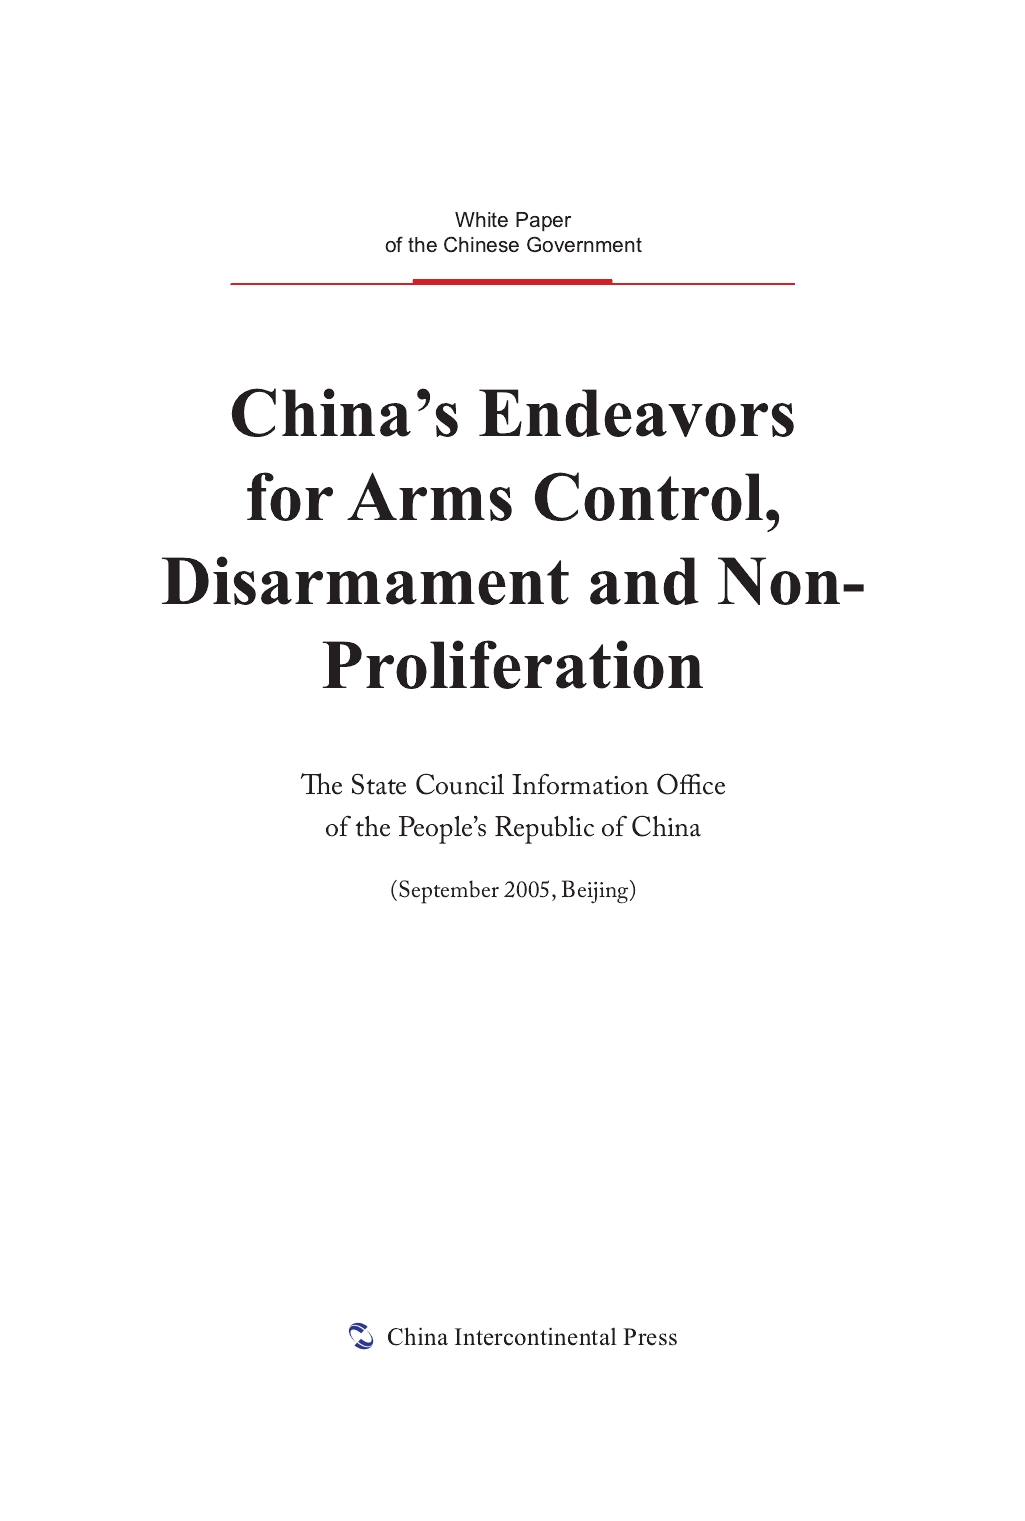 China's Endeavors for Arms Control,Disarmament and Non-Proliferation